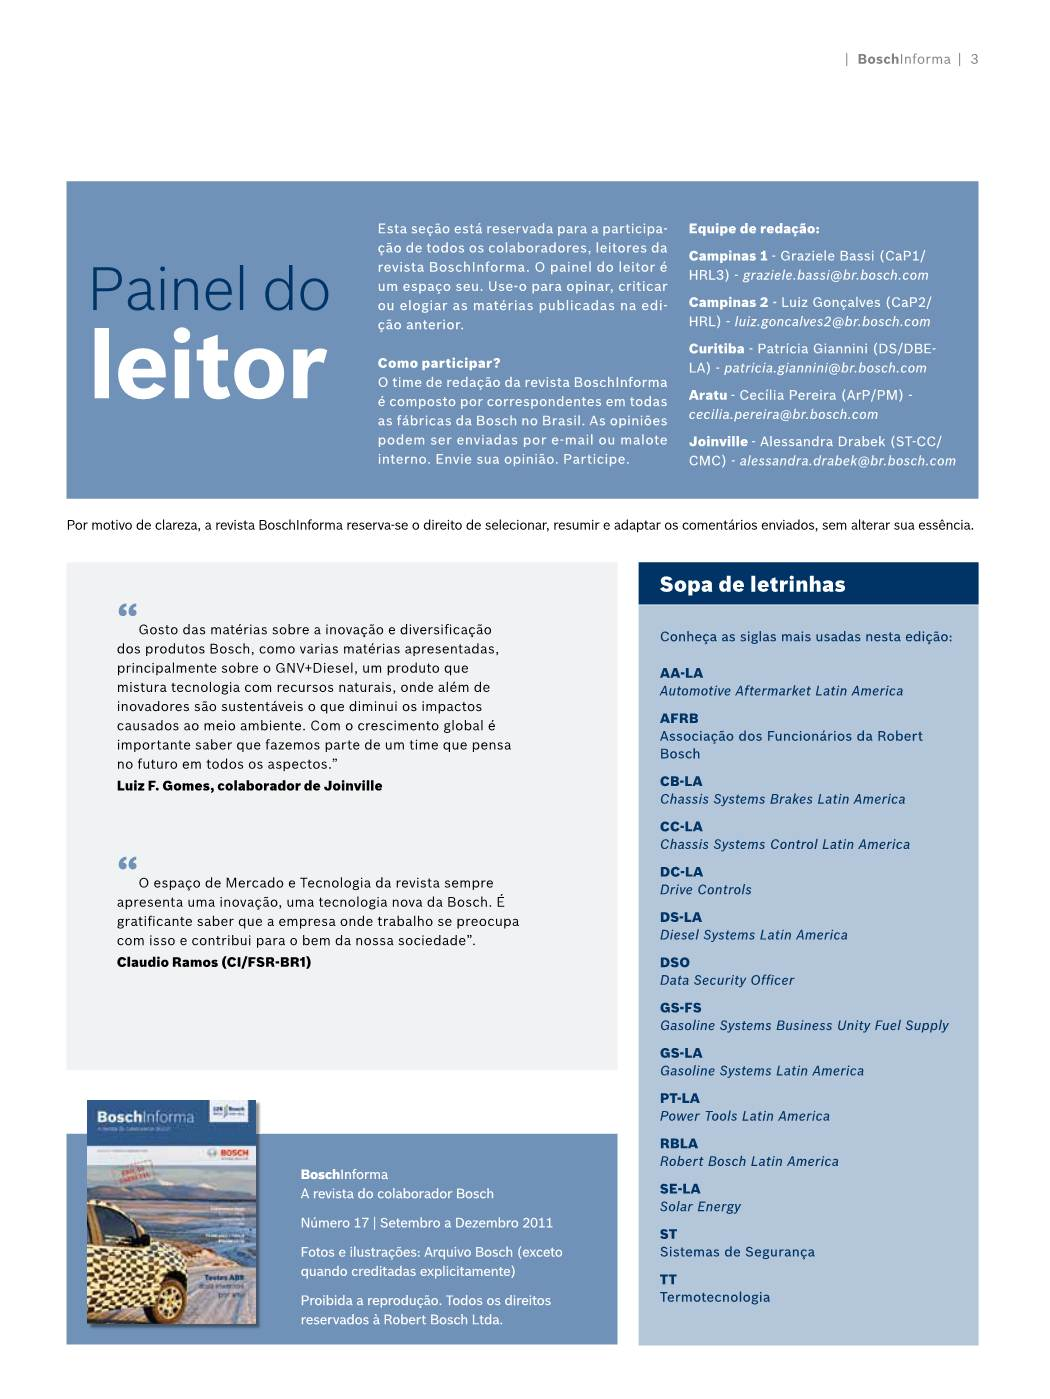 db1555878 Index of /revistas/boschinforma2/revista/assets/mobile